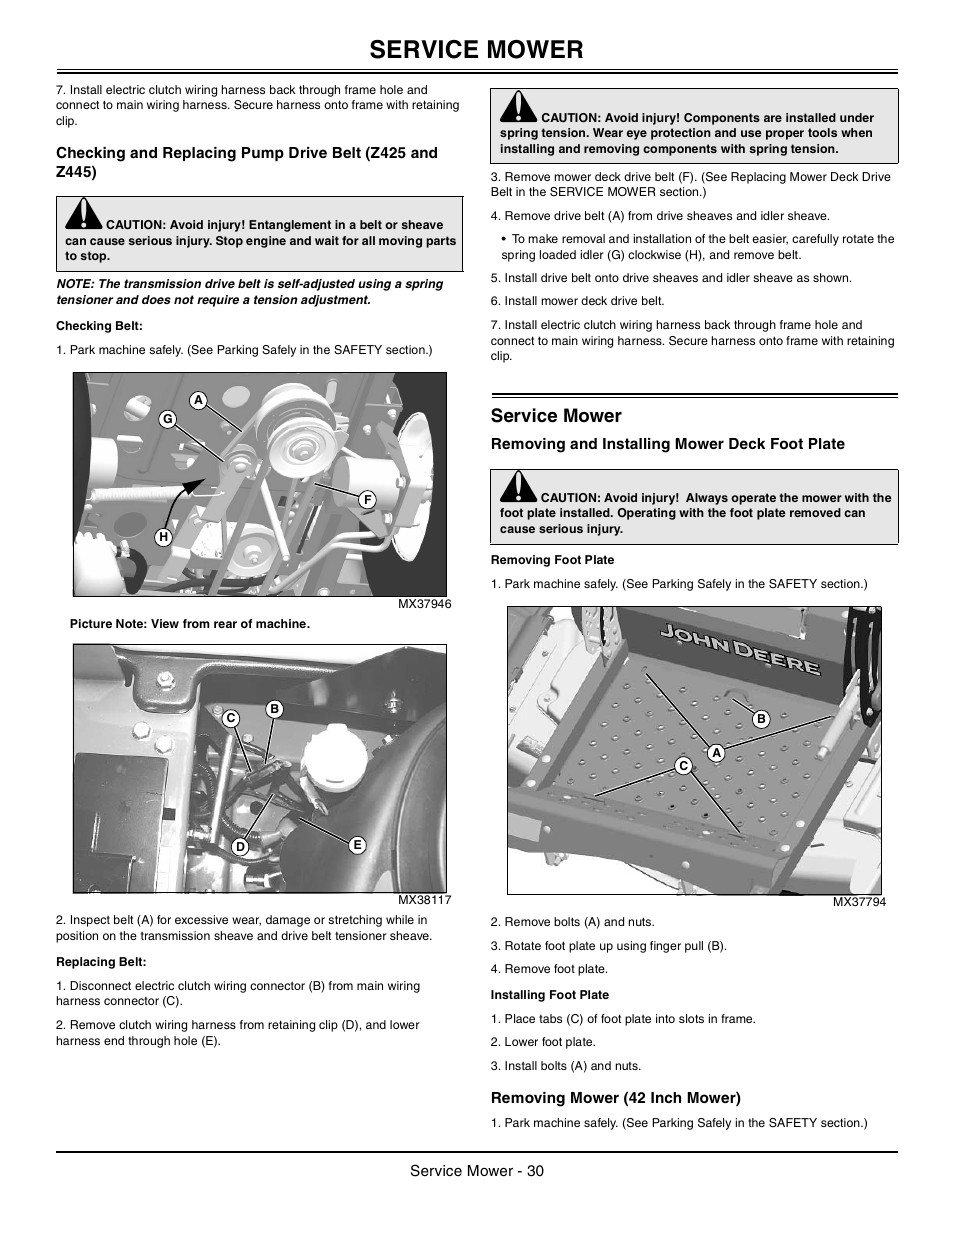 Checking Belt Replacing Service Mower John Deere Z425 User H Wiring Harness Manual Page 31 48